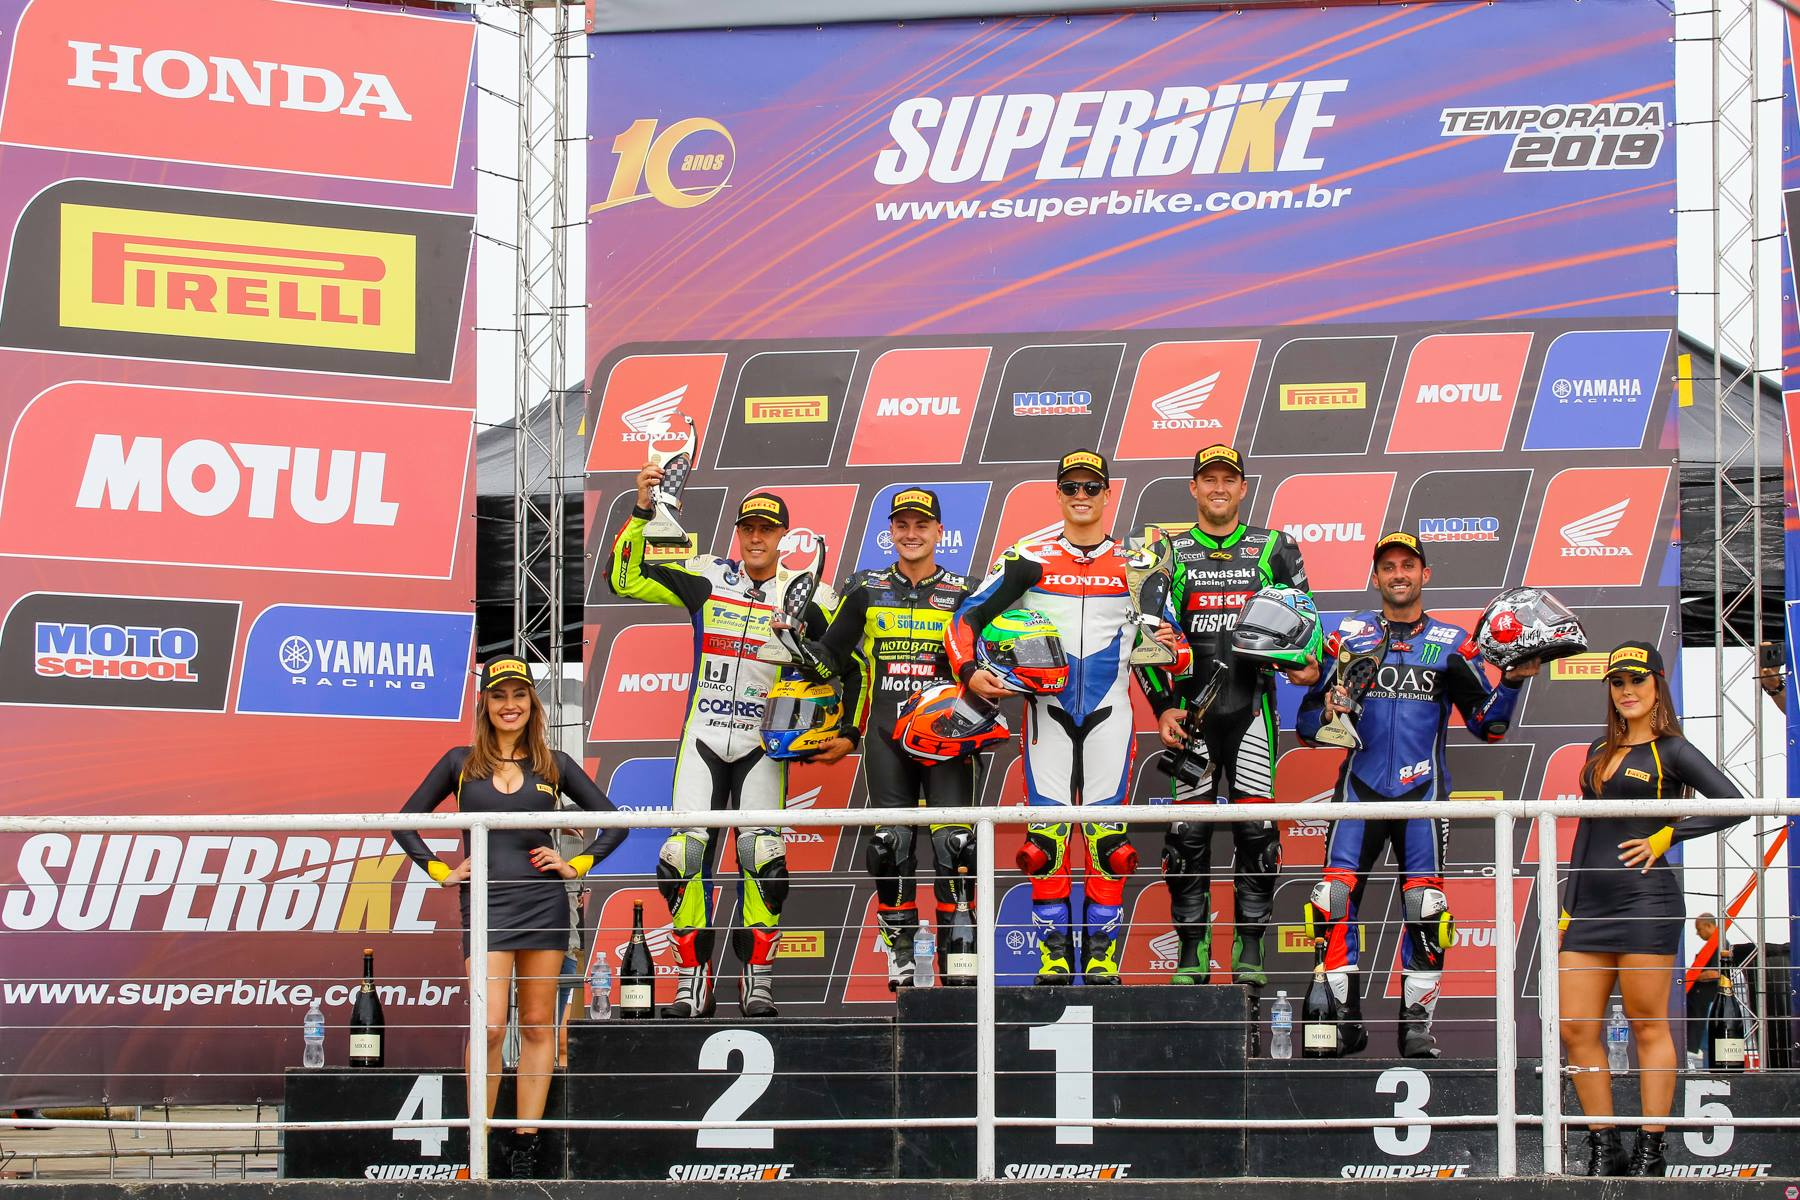 Brasil SuperBike – Vittoria di Granado. Terzo West che rafforza la sua leadership in classifica